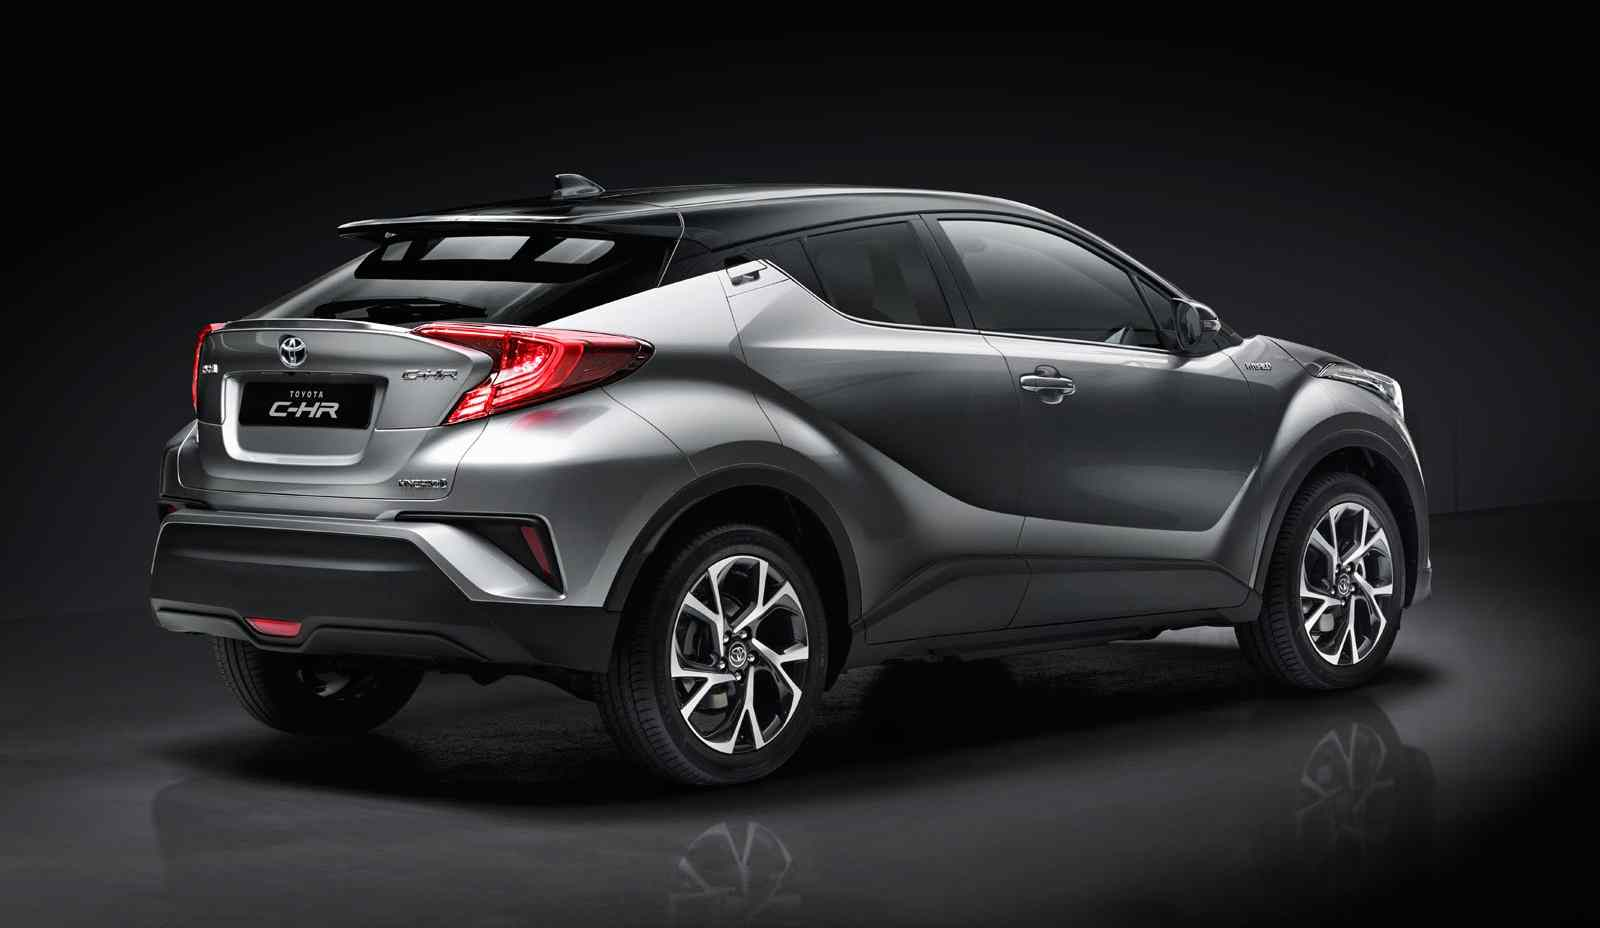 Toyota C-HR, exterior Silver, side back view, black background.